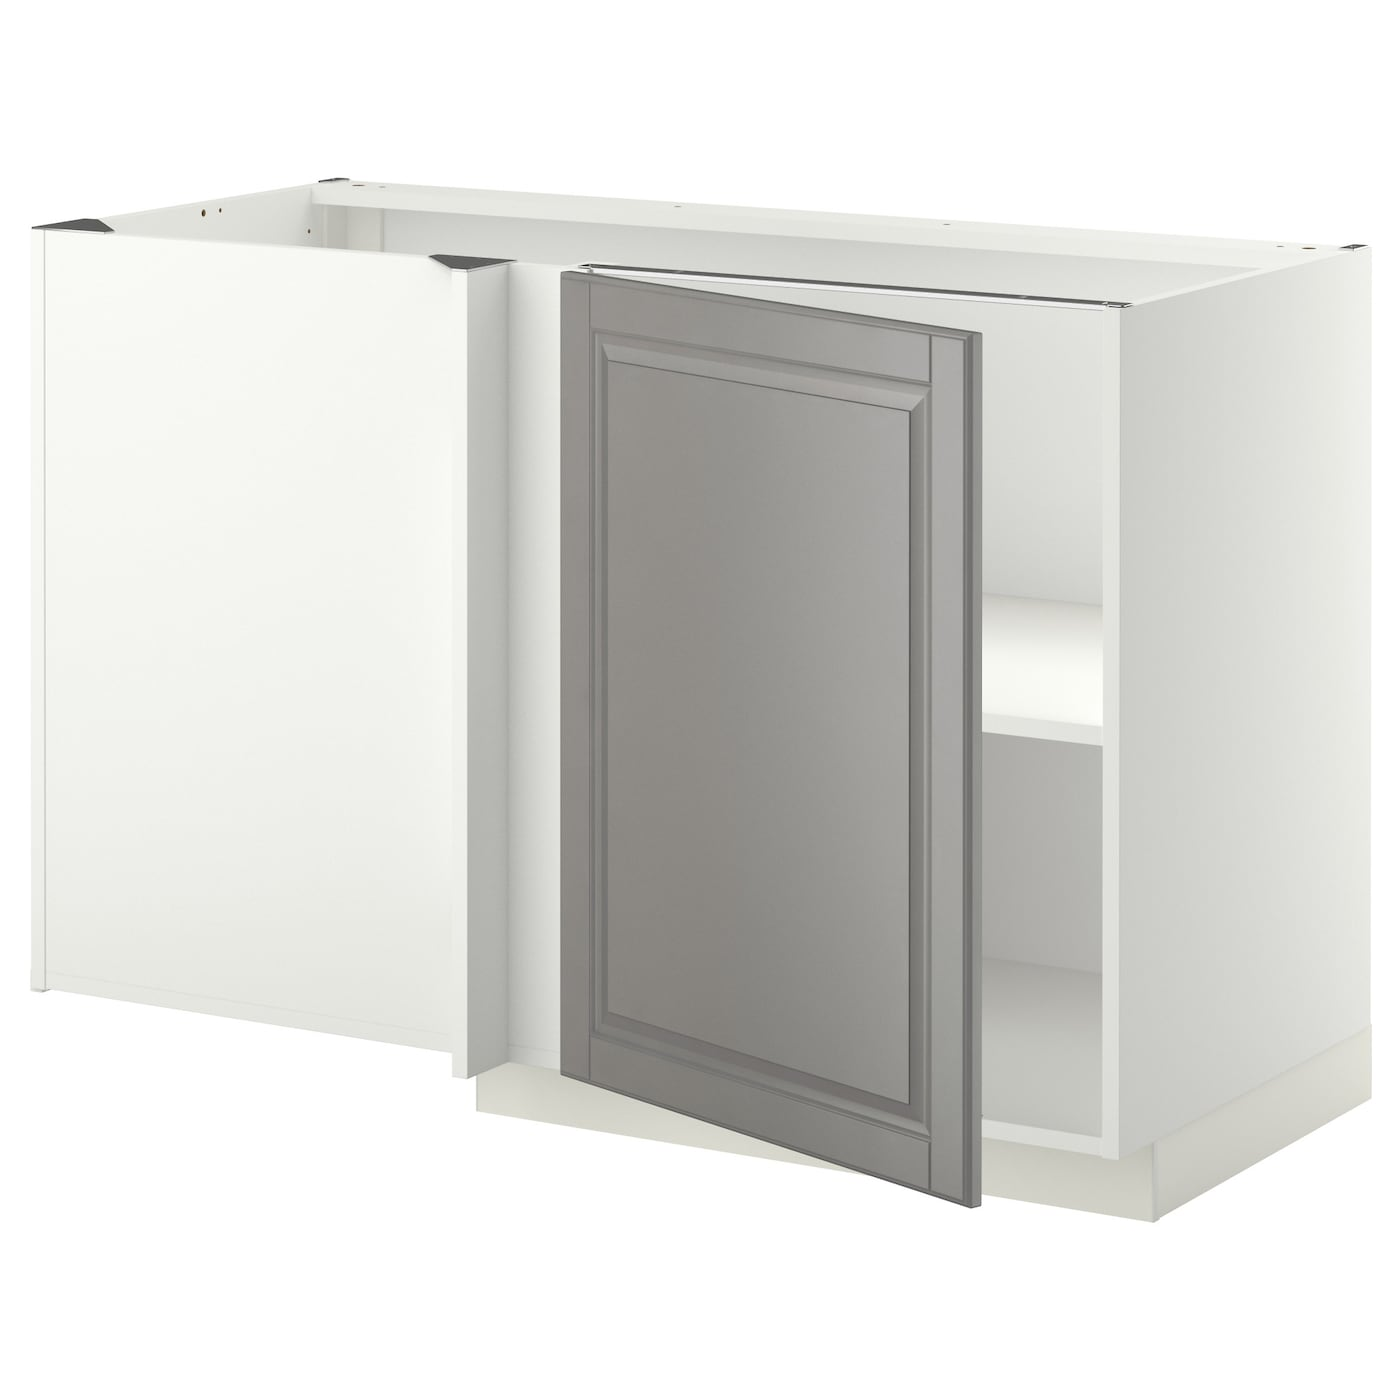 Ikea Kitchen Bodbyn Grey: METOD Corner Base Cabinet With Shelf White/bodbyn Grey 128